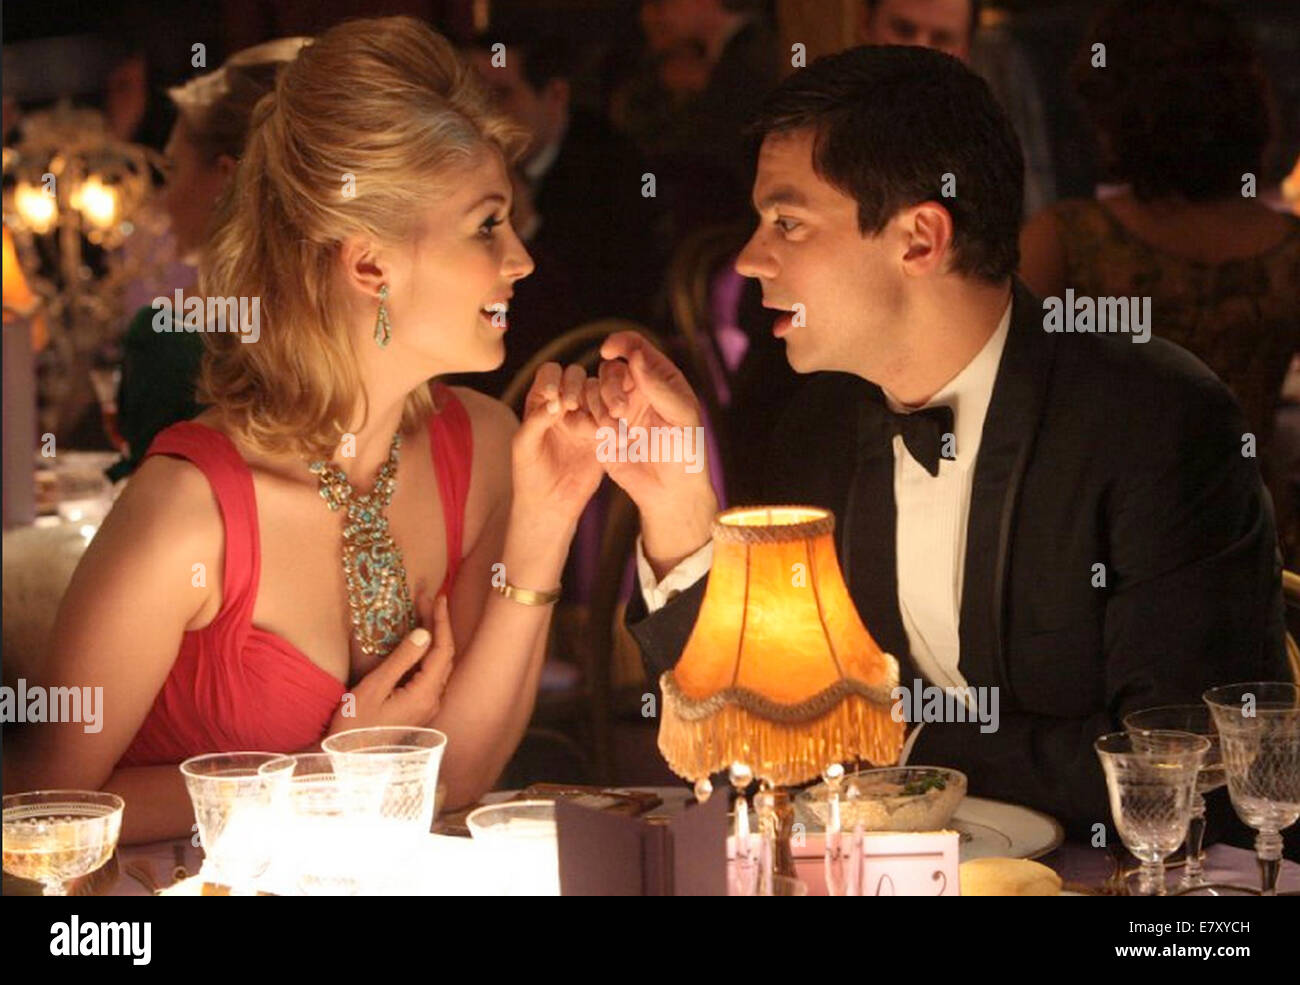 AN EDUCATION 2009 BBC Films production with Rosamund Pike and Dominic Cooper - Stock Image